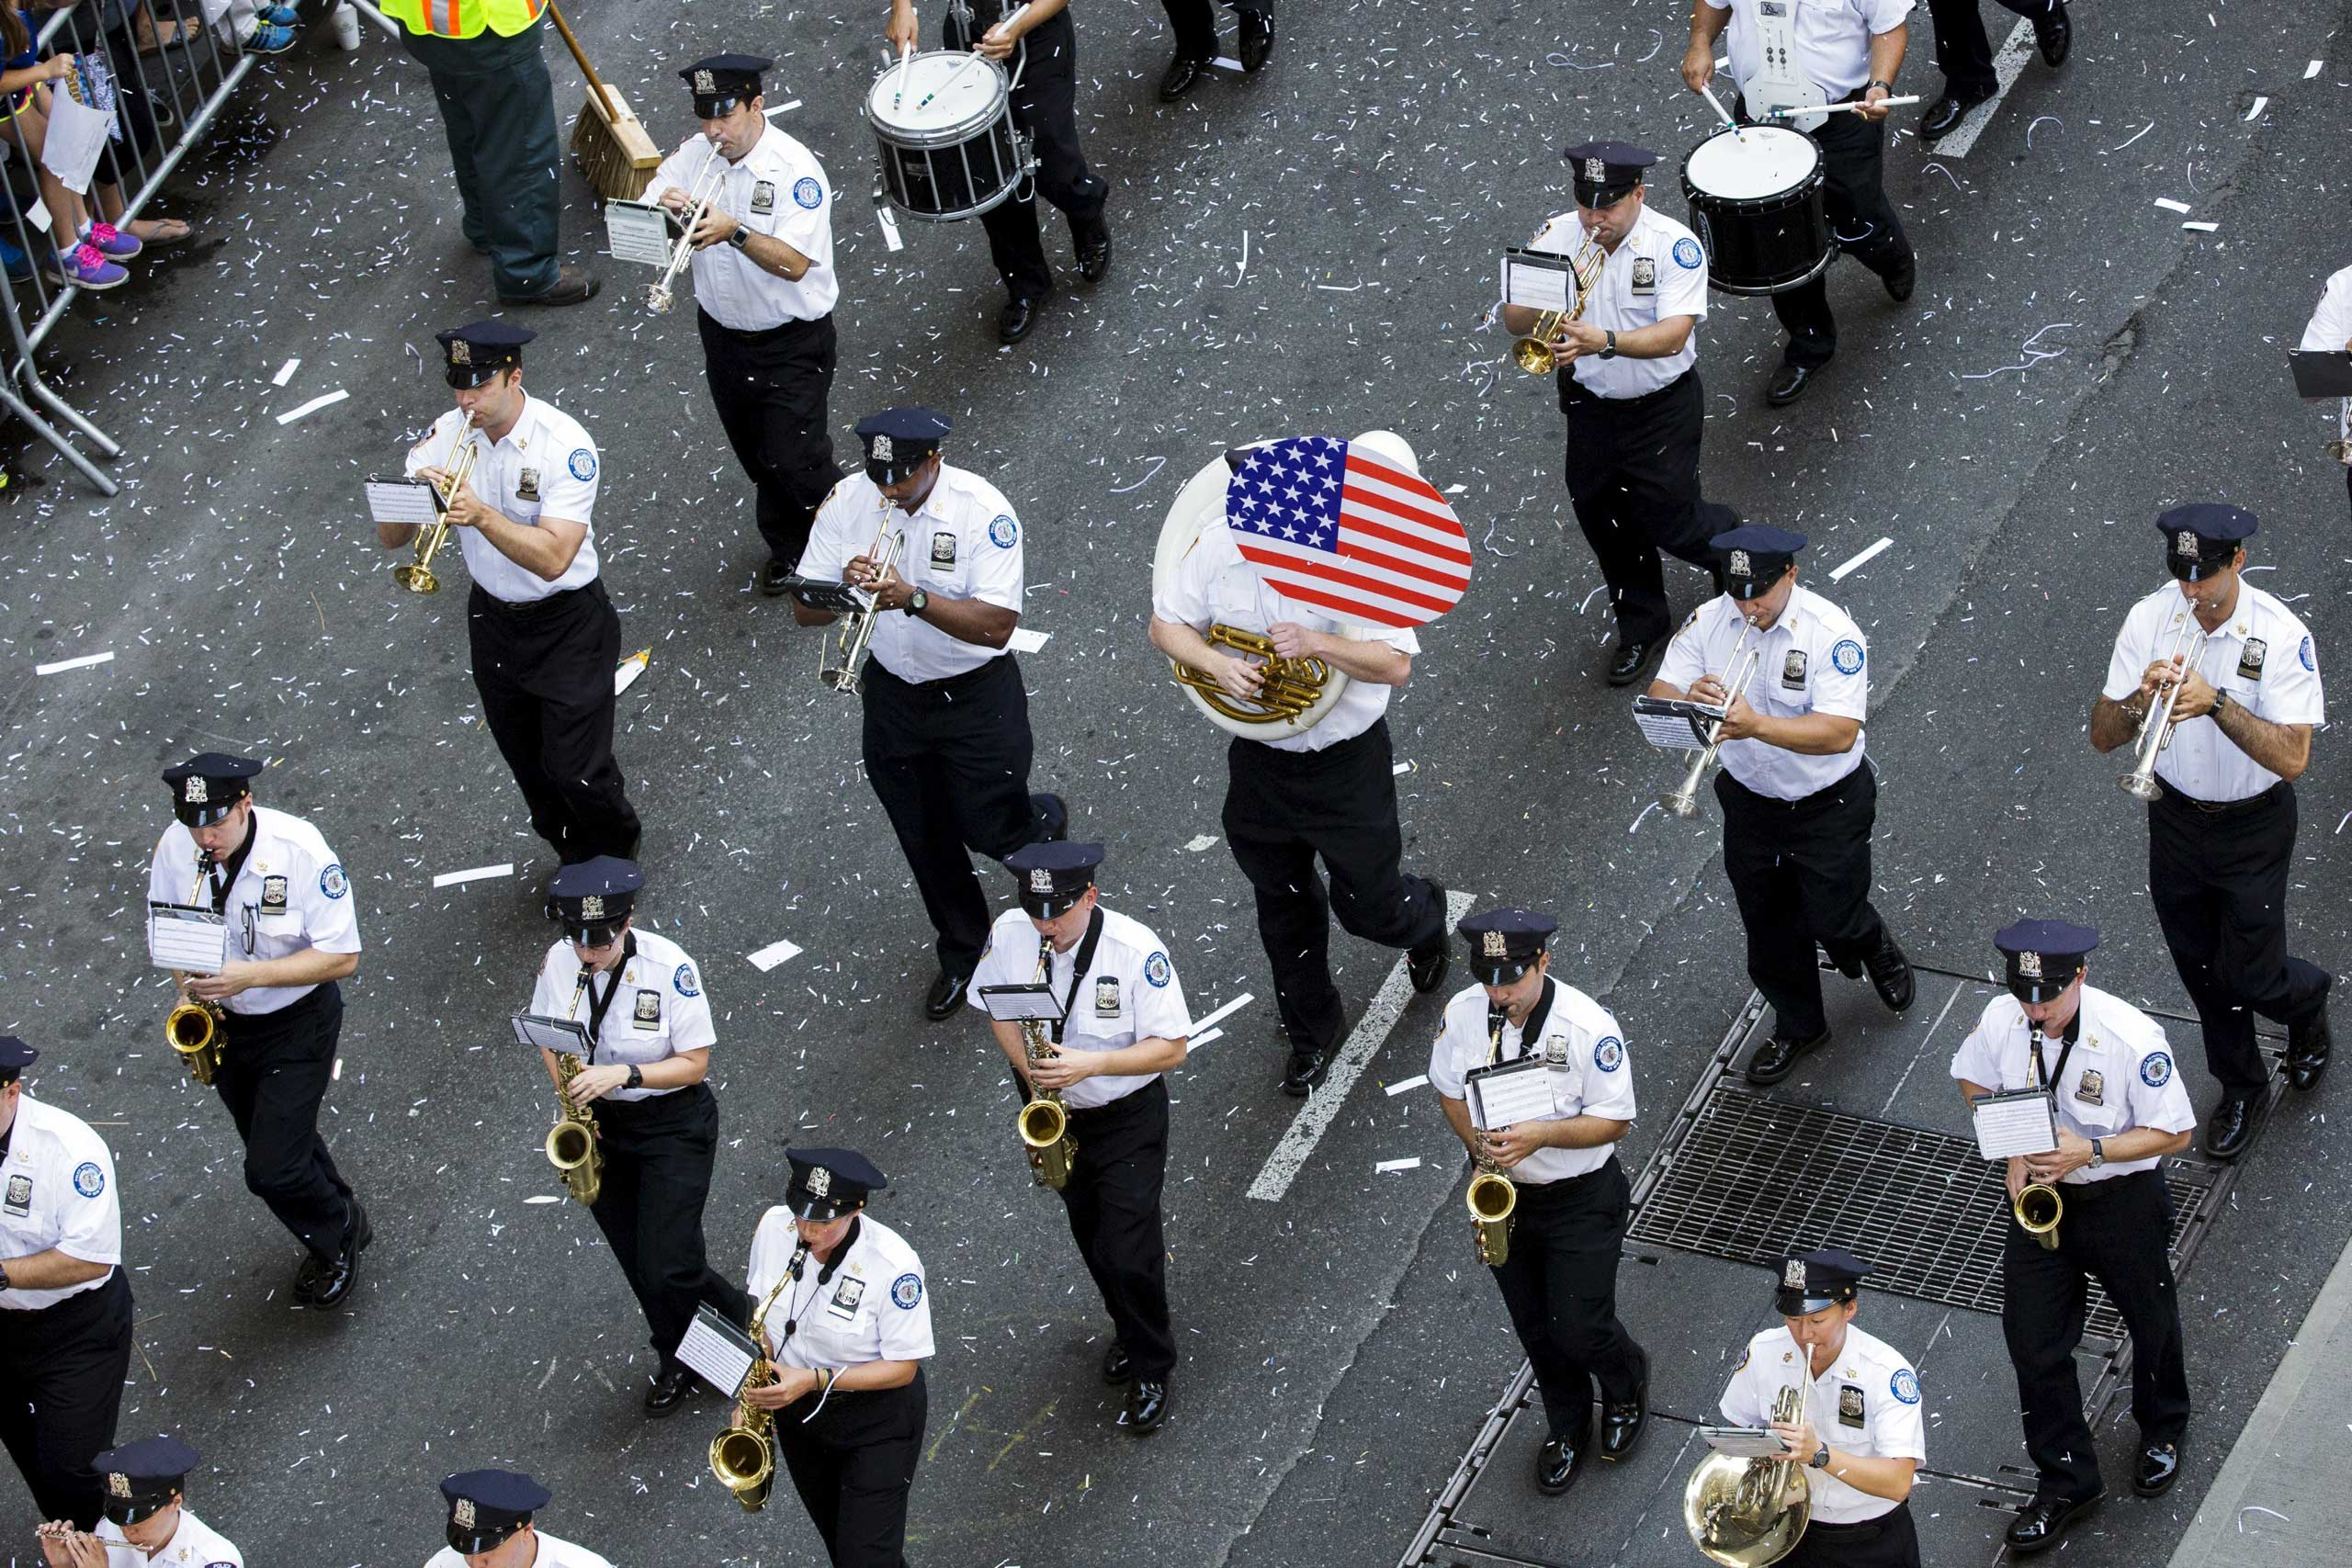 A band plays during the ticker tape parade to celebrate the U.S. women's soccer team World Cup victory in New York City on July 10, 2015.